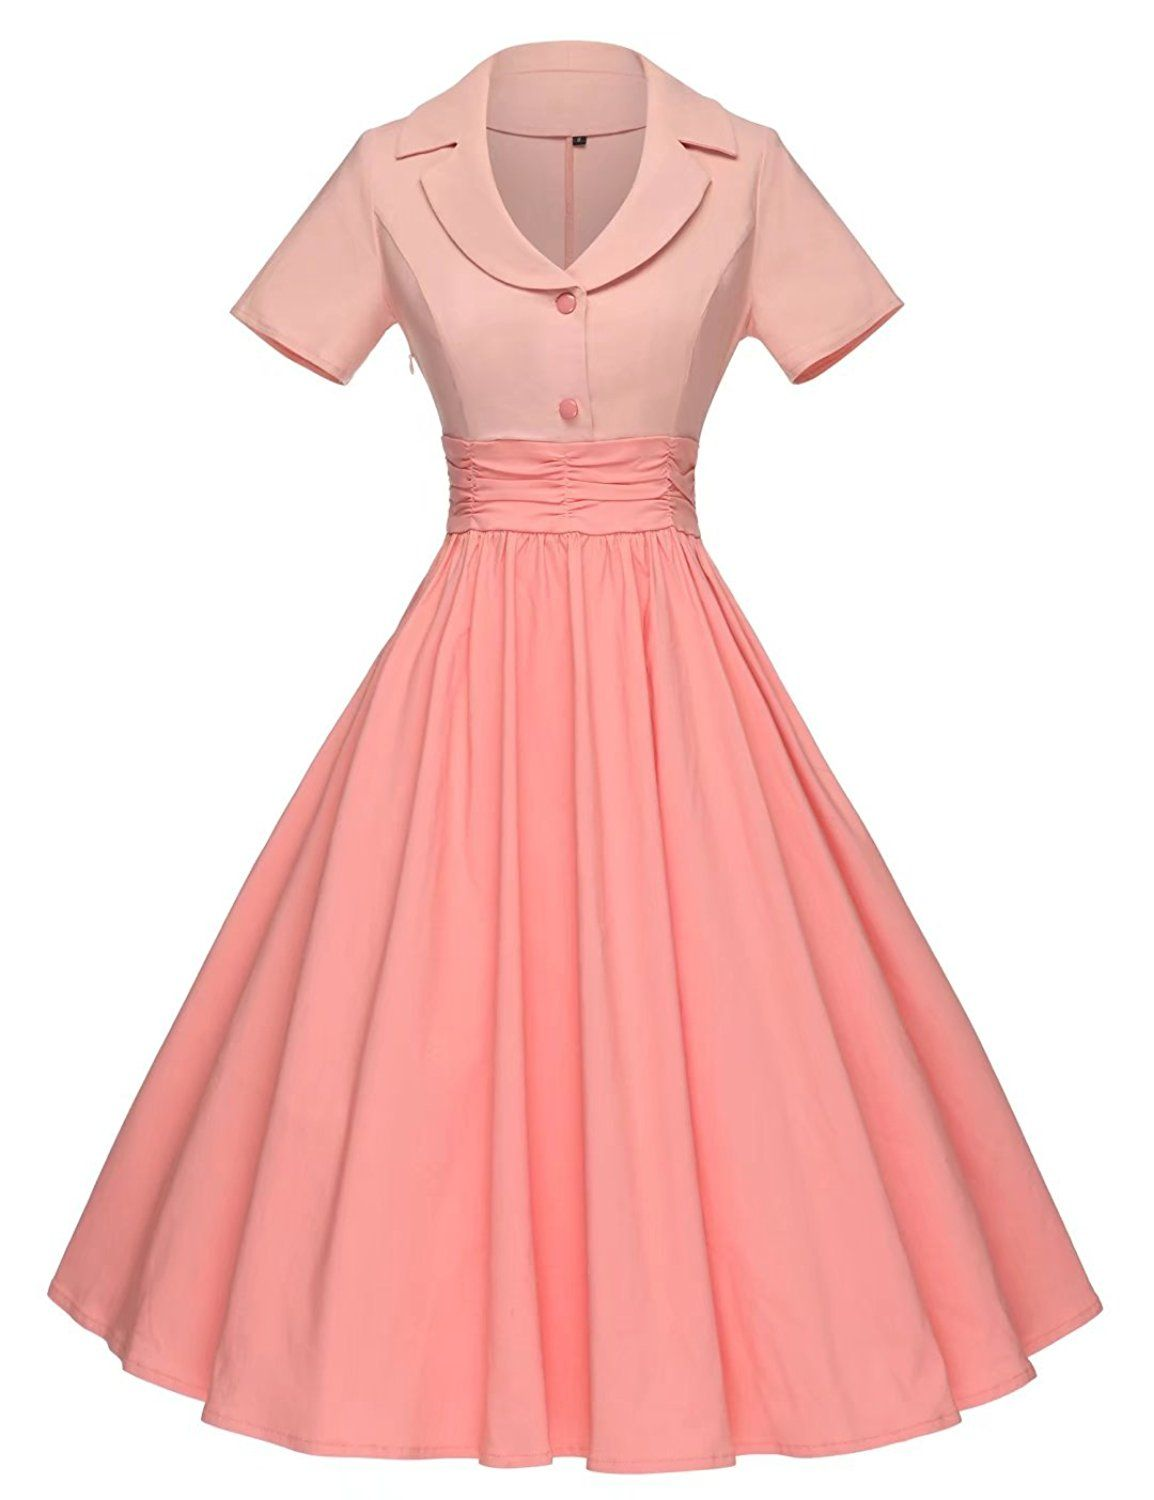 e5a9419d9d0f GownTown Women Splicing Swing Dress Party Picnic Cocktail Dress at Amazon  Women's Clothing store: